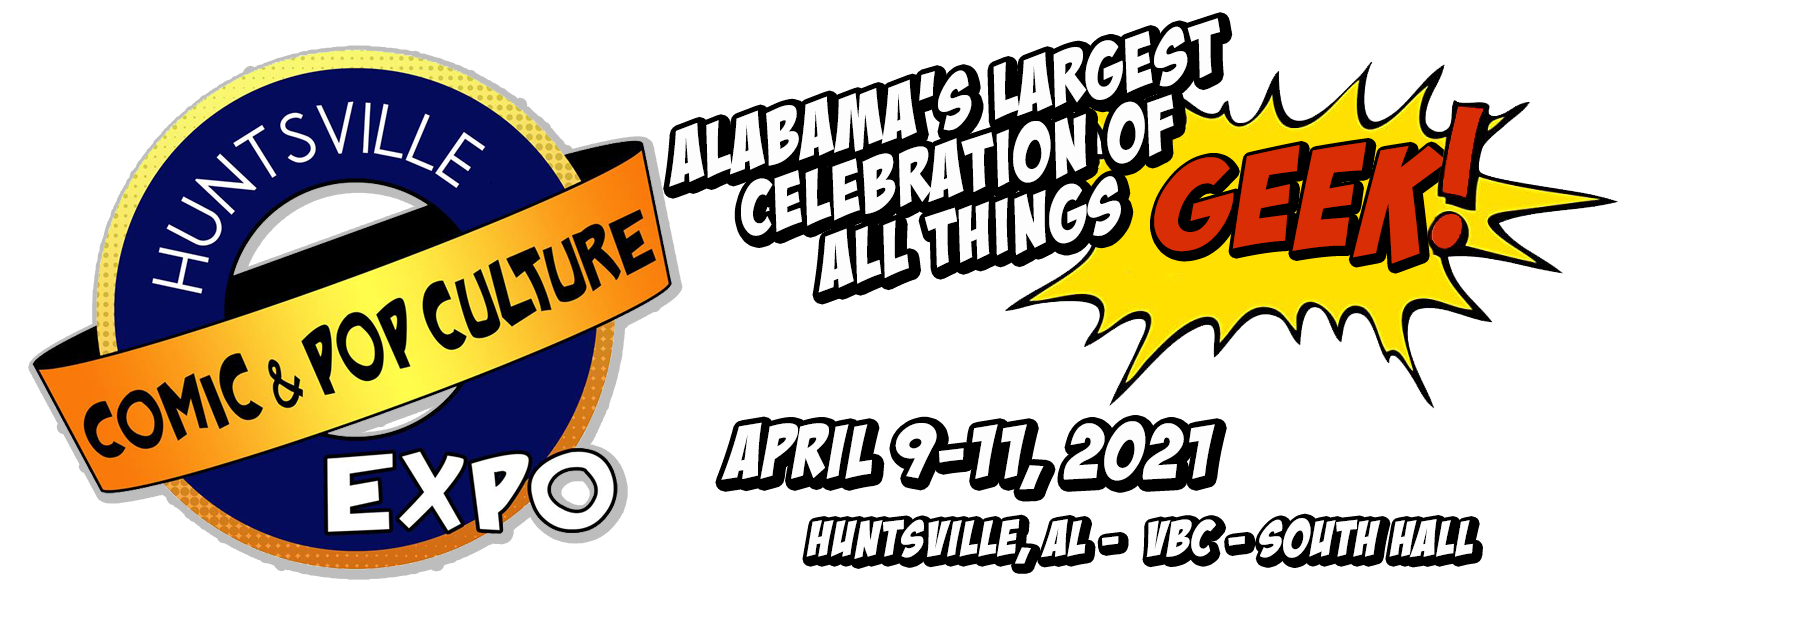 Huntsville Comic and Pop Culture Expo